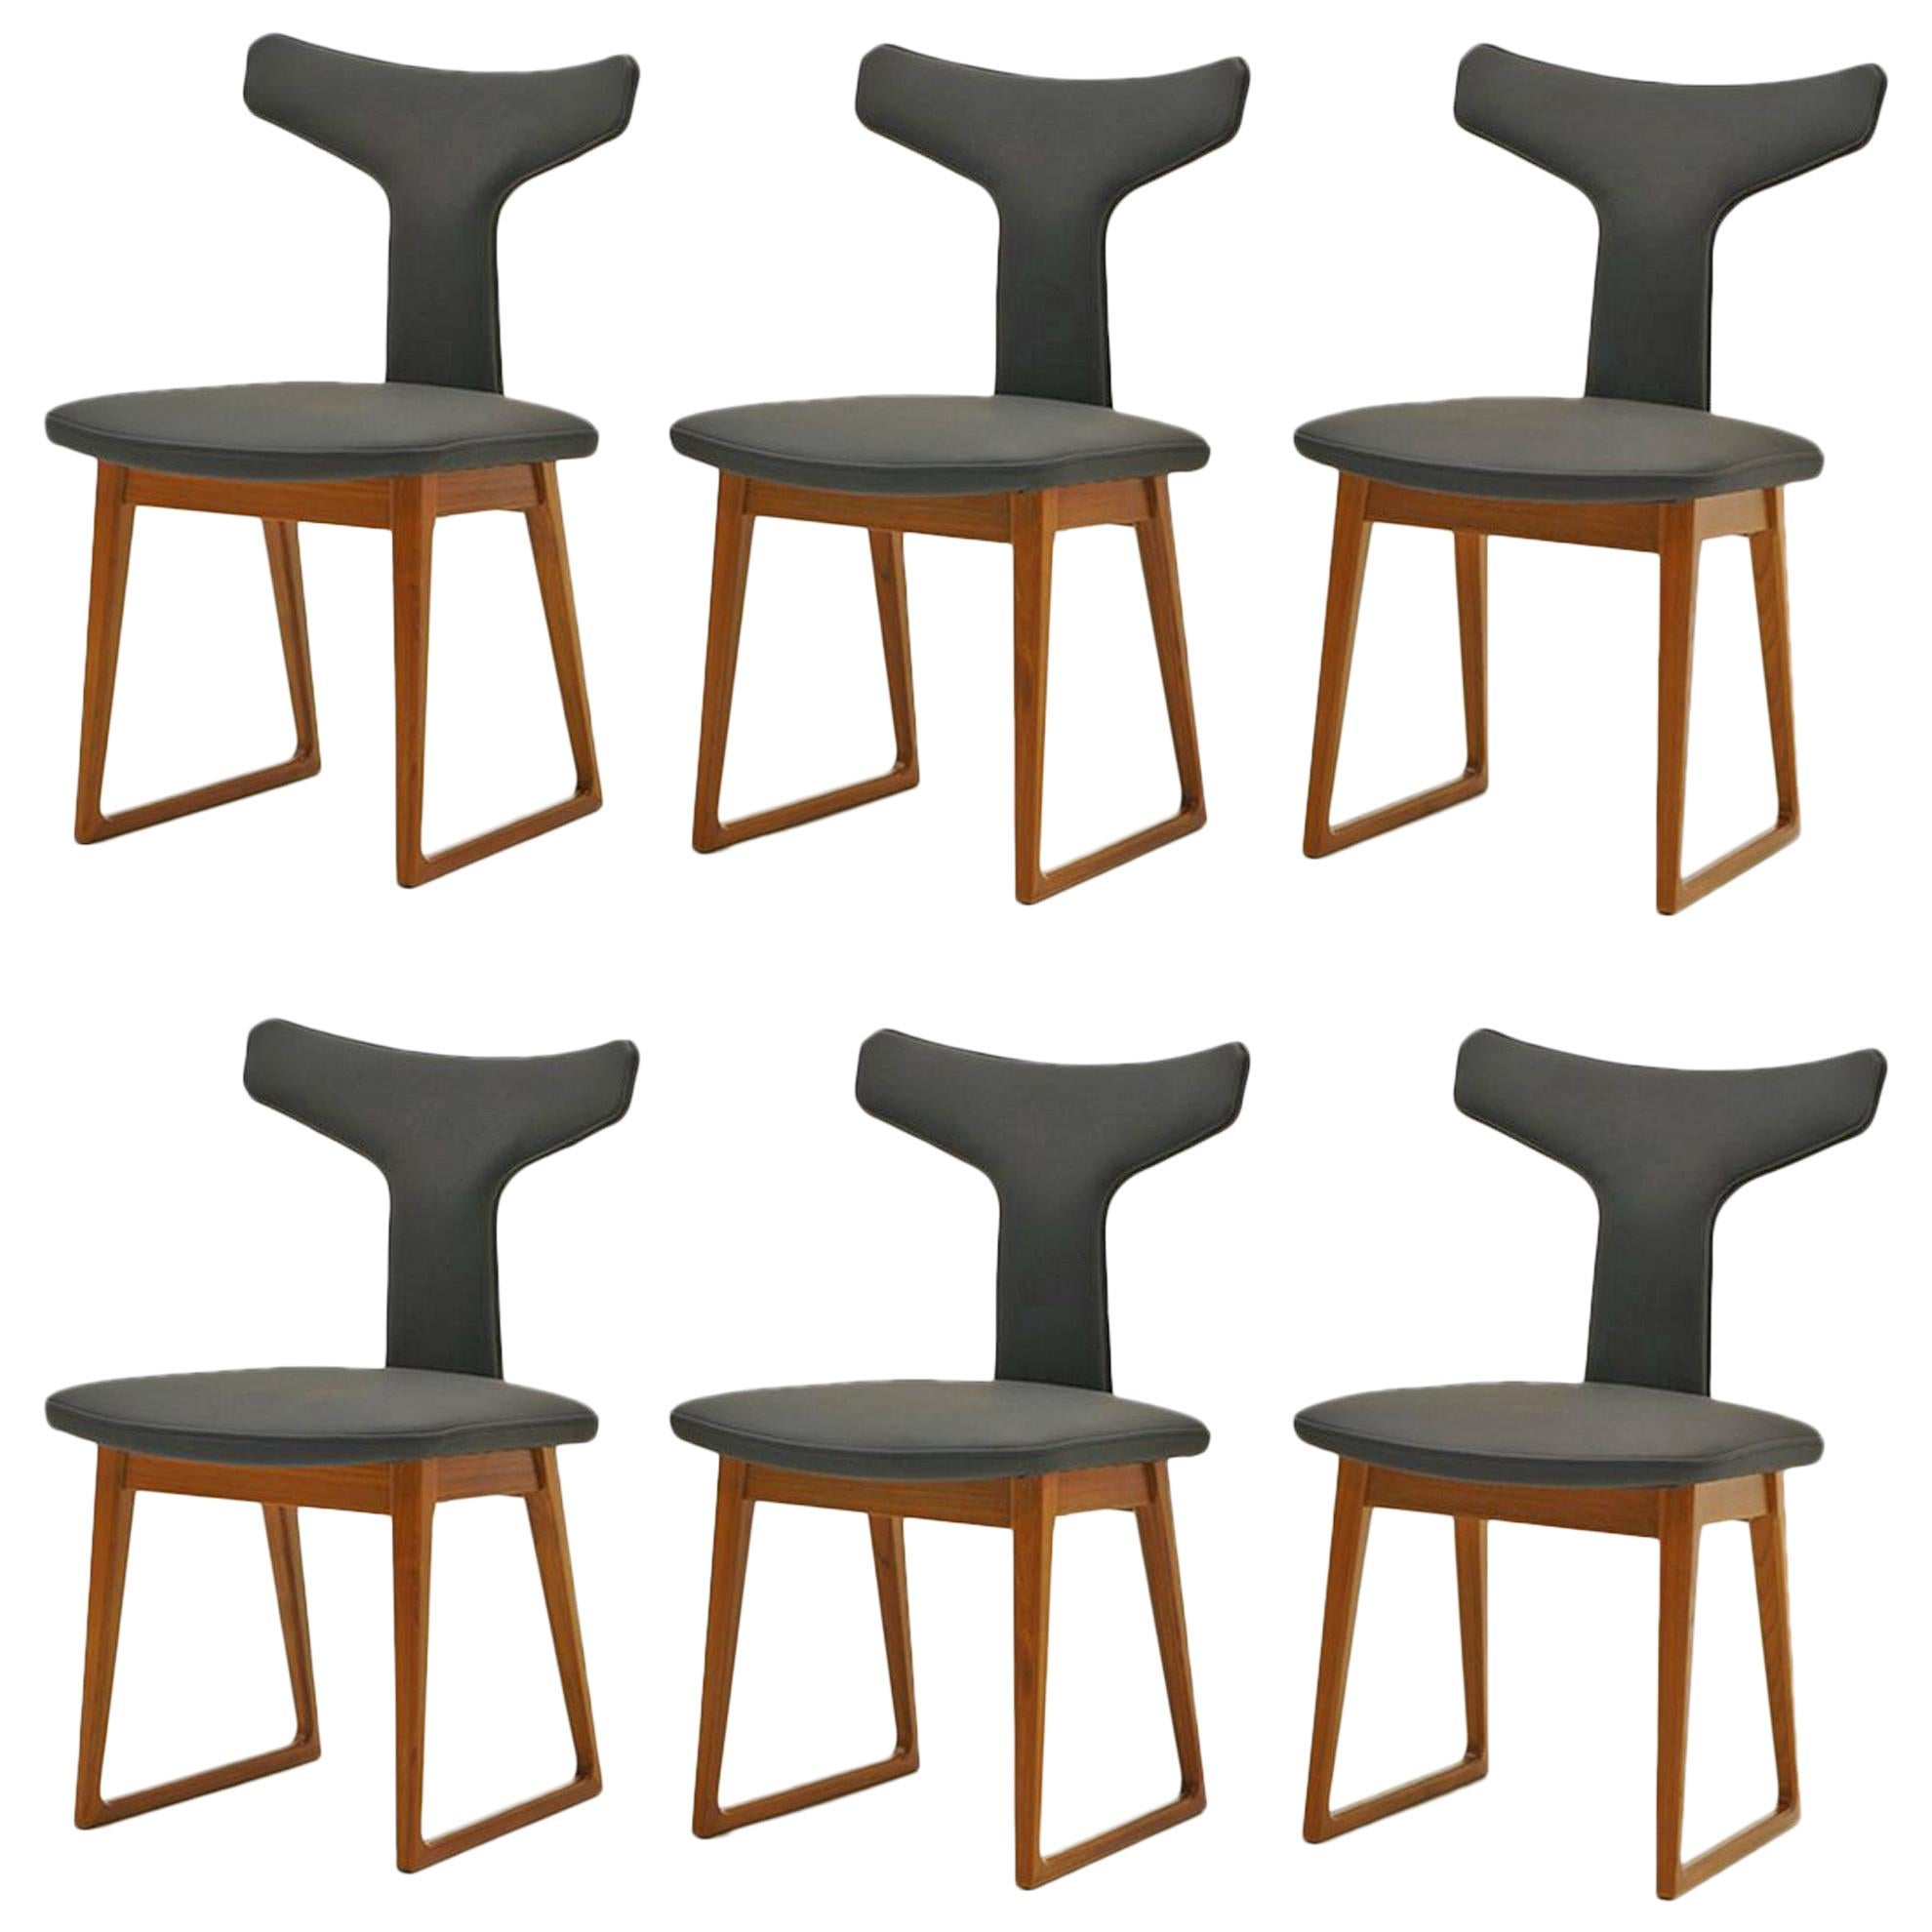 Rare Set of Six Dining Chairs by Arne Vodder for Sibast, Teak and Black Leather